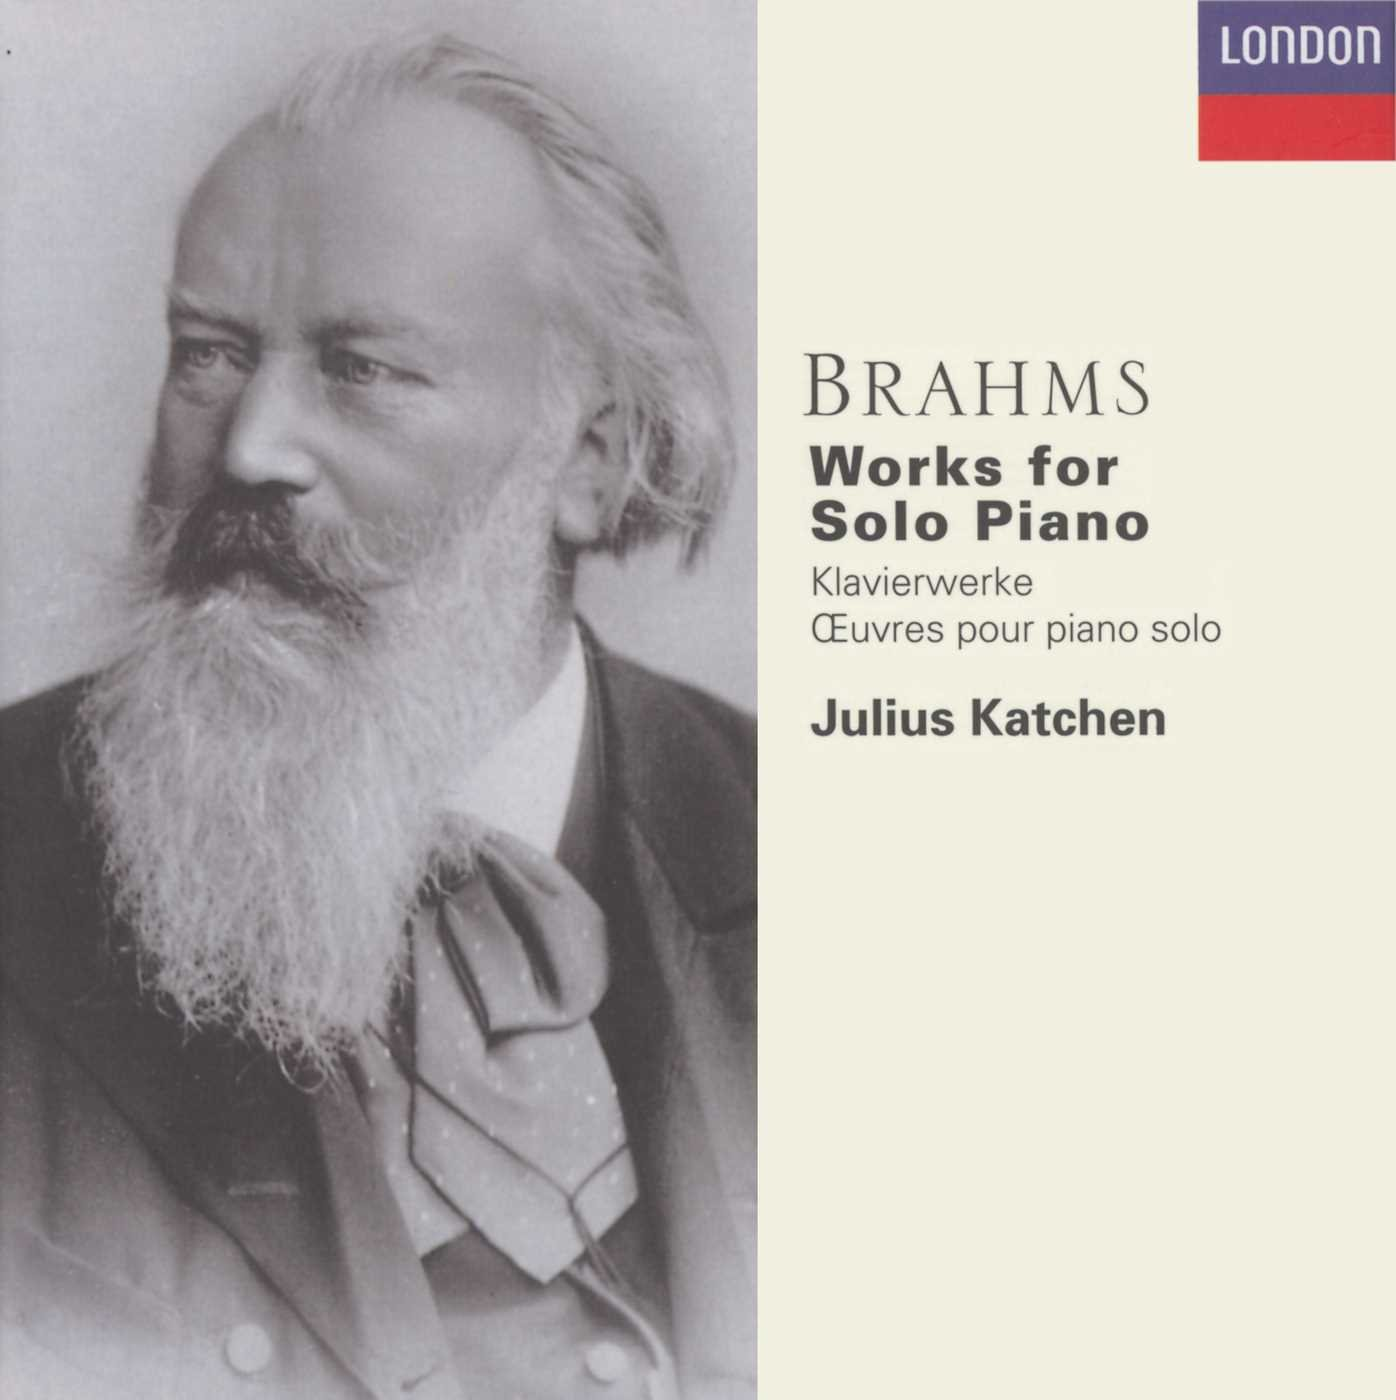 Brahms: Solo Piano Works by Decca